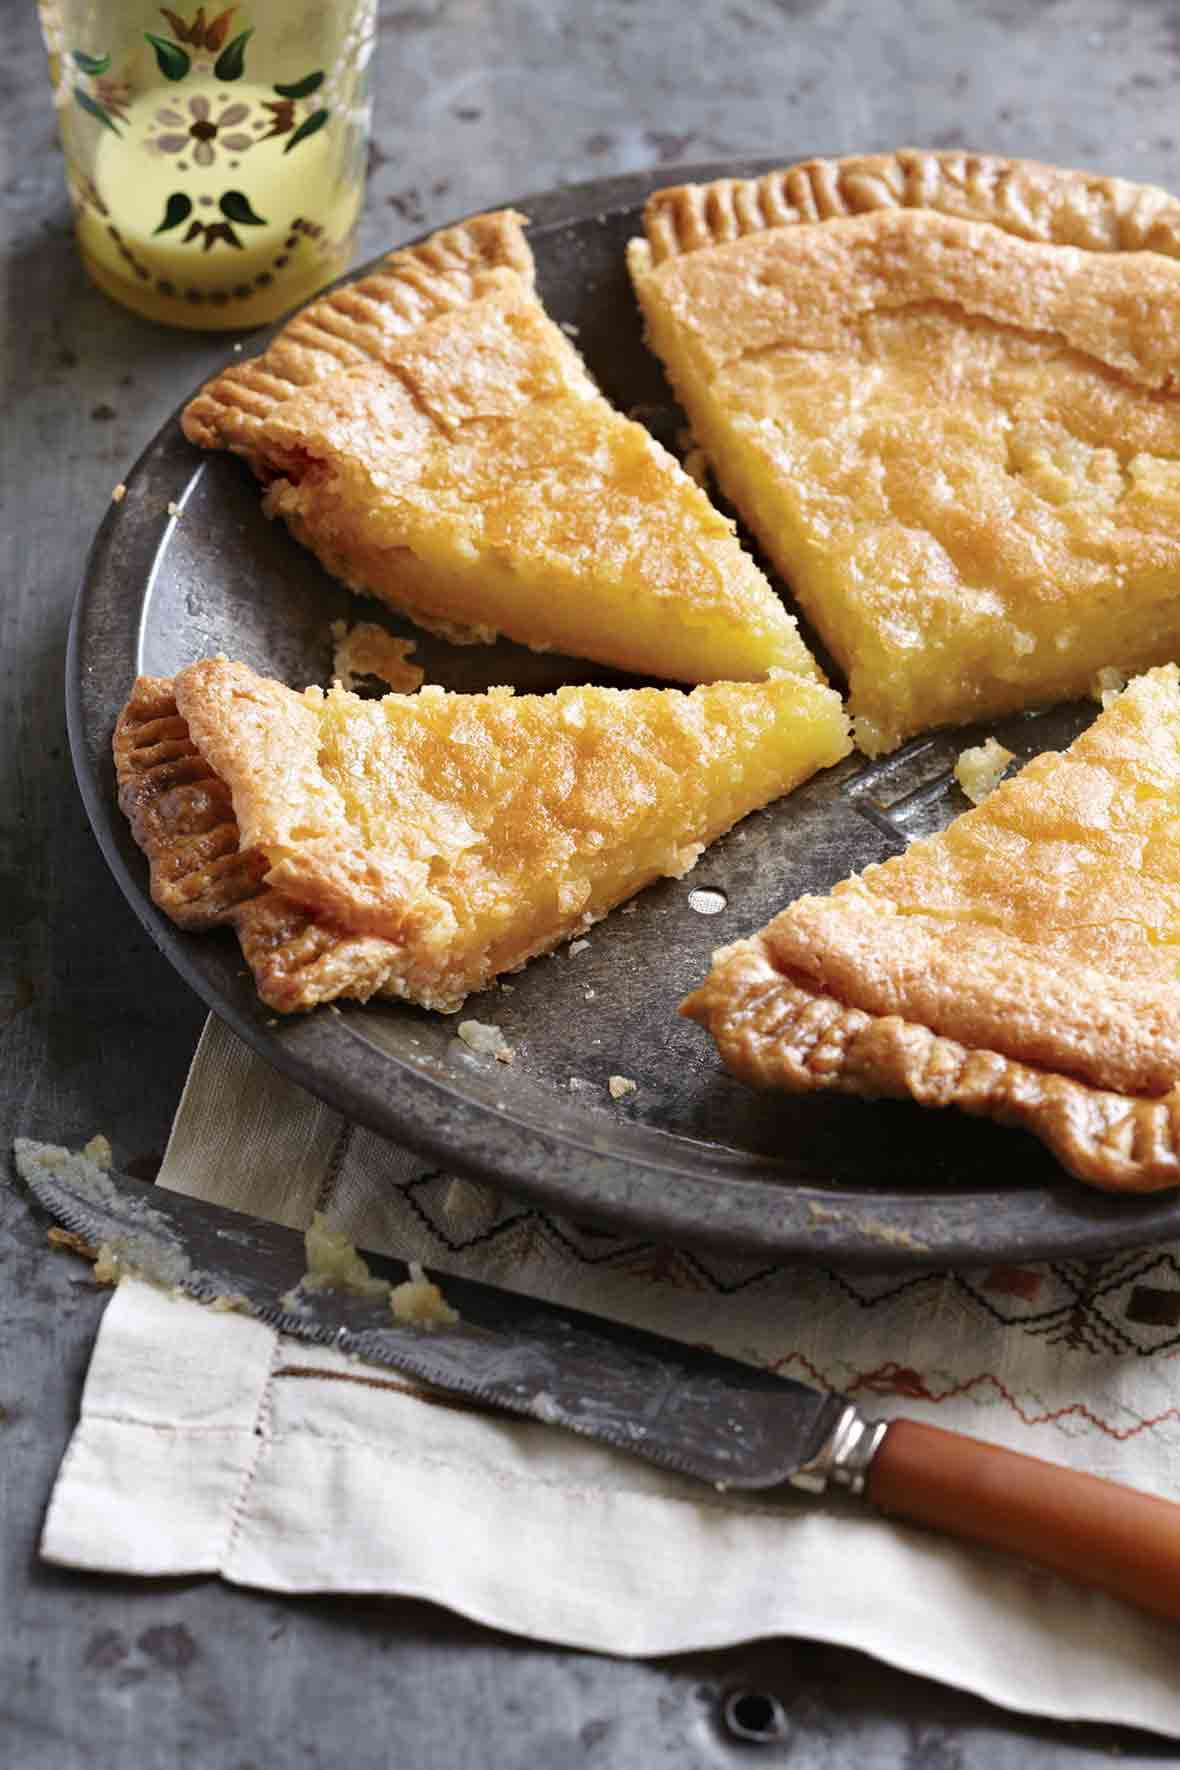 A chess pie with a homemade crust cut into four slices in an antique tin pie plate on top of a napkin